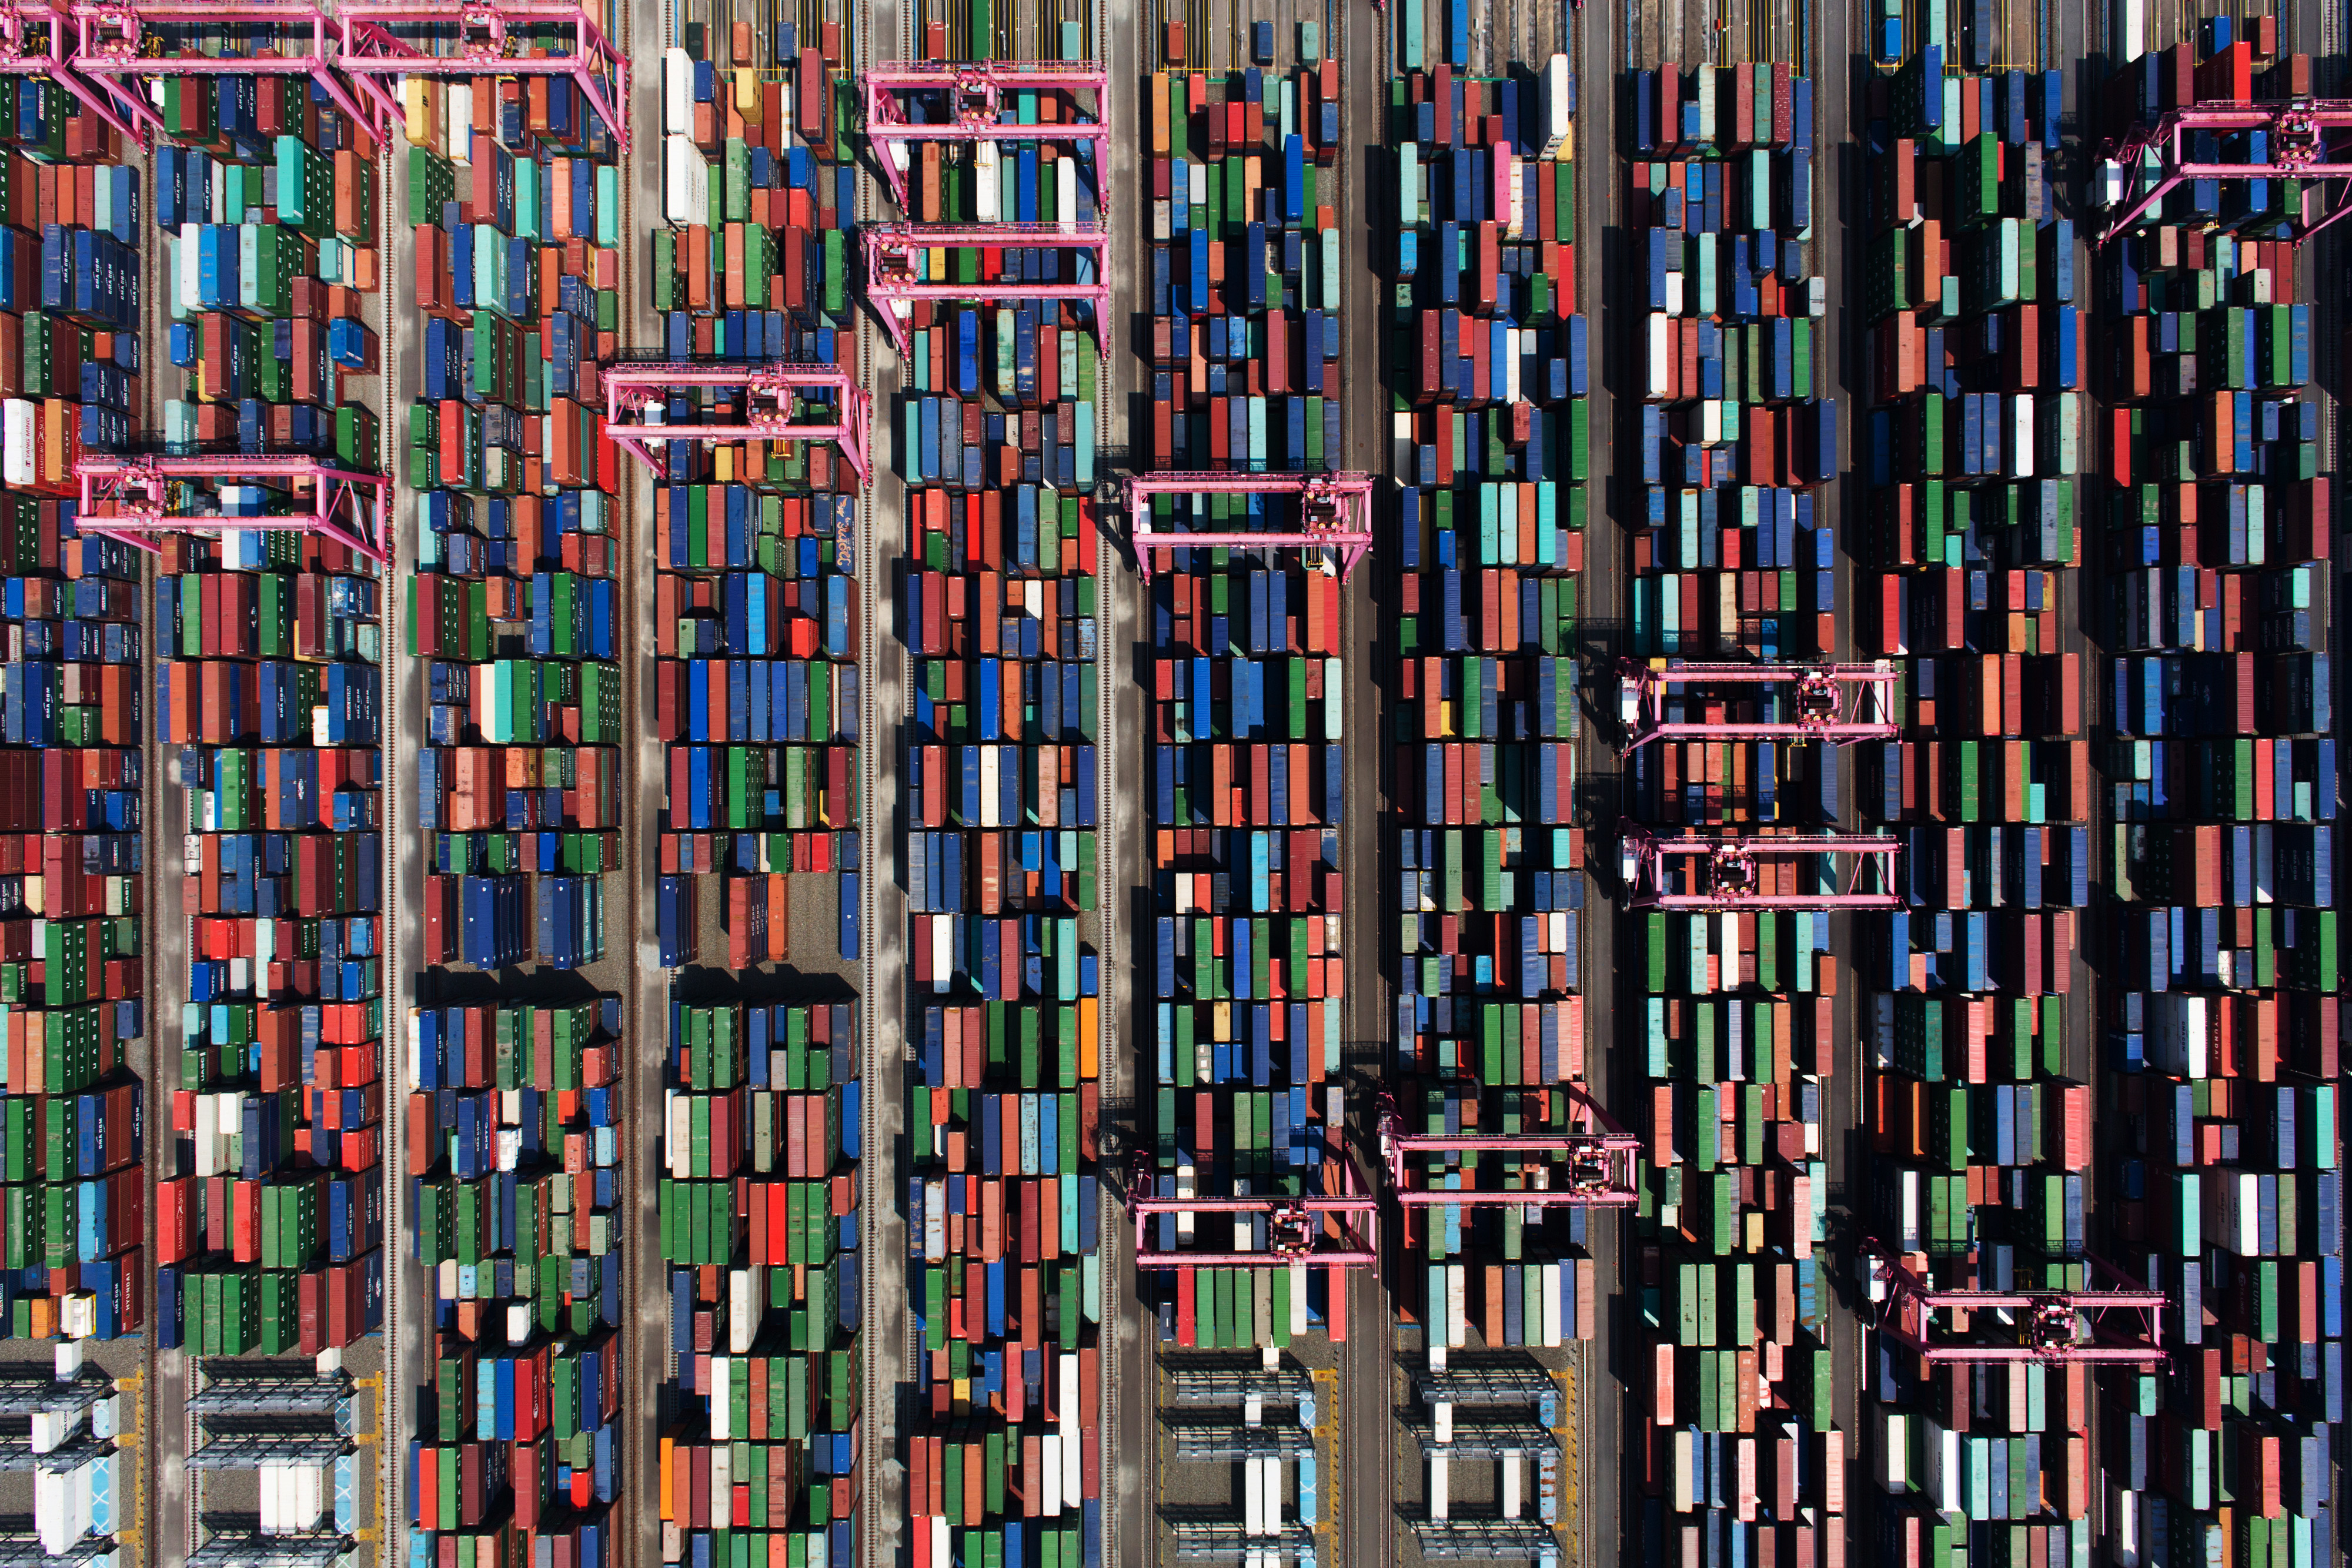 Shipping containers sit stacked among gantry cranes in this aerial photograph taken above the BNCT Co. container terminal at Busan New Port in Busan, South Korea, on Thursday, July 30, 2015. South Korea is scheduled to release trade figures on Aug. 1. Photographer: SeongJoon Cho/Bloomberg via Getty Images